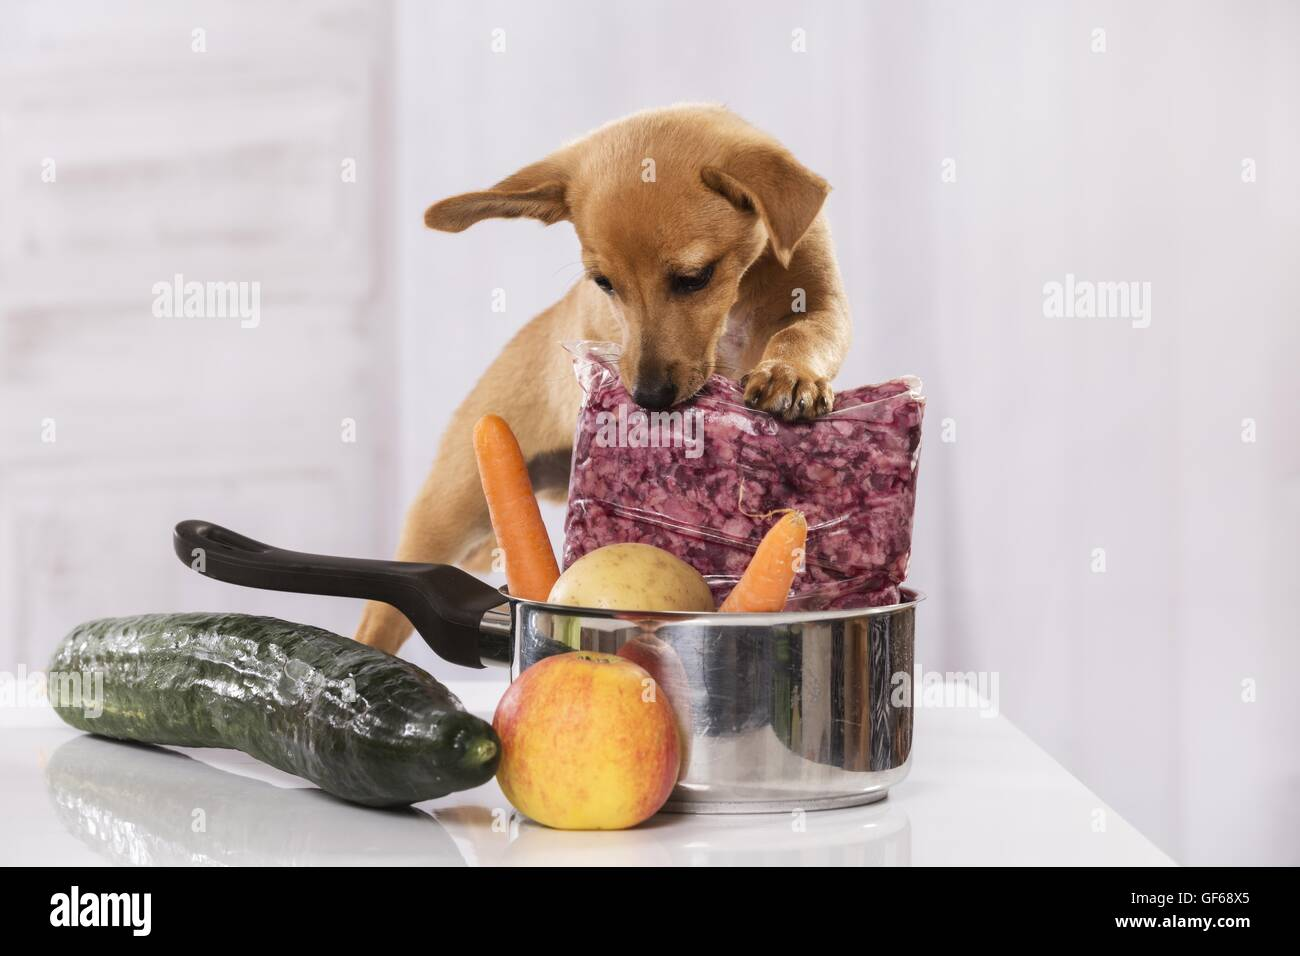 Puppy with food - Stock Image